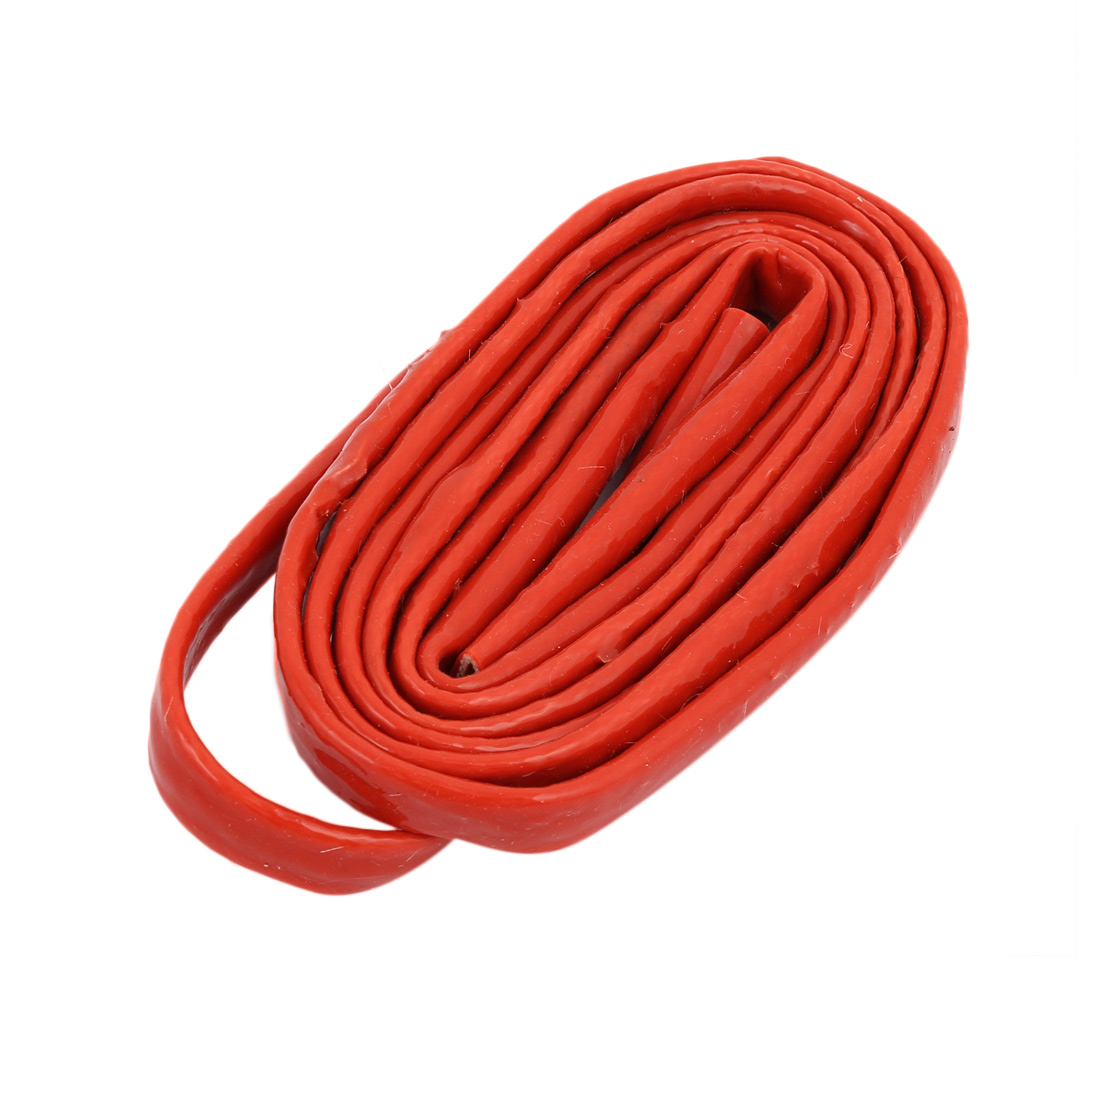 Silicone Rubber Fiberglass Thickened Retardant Sleeving 6mmx2M Red